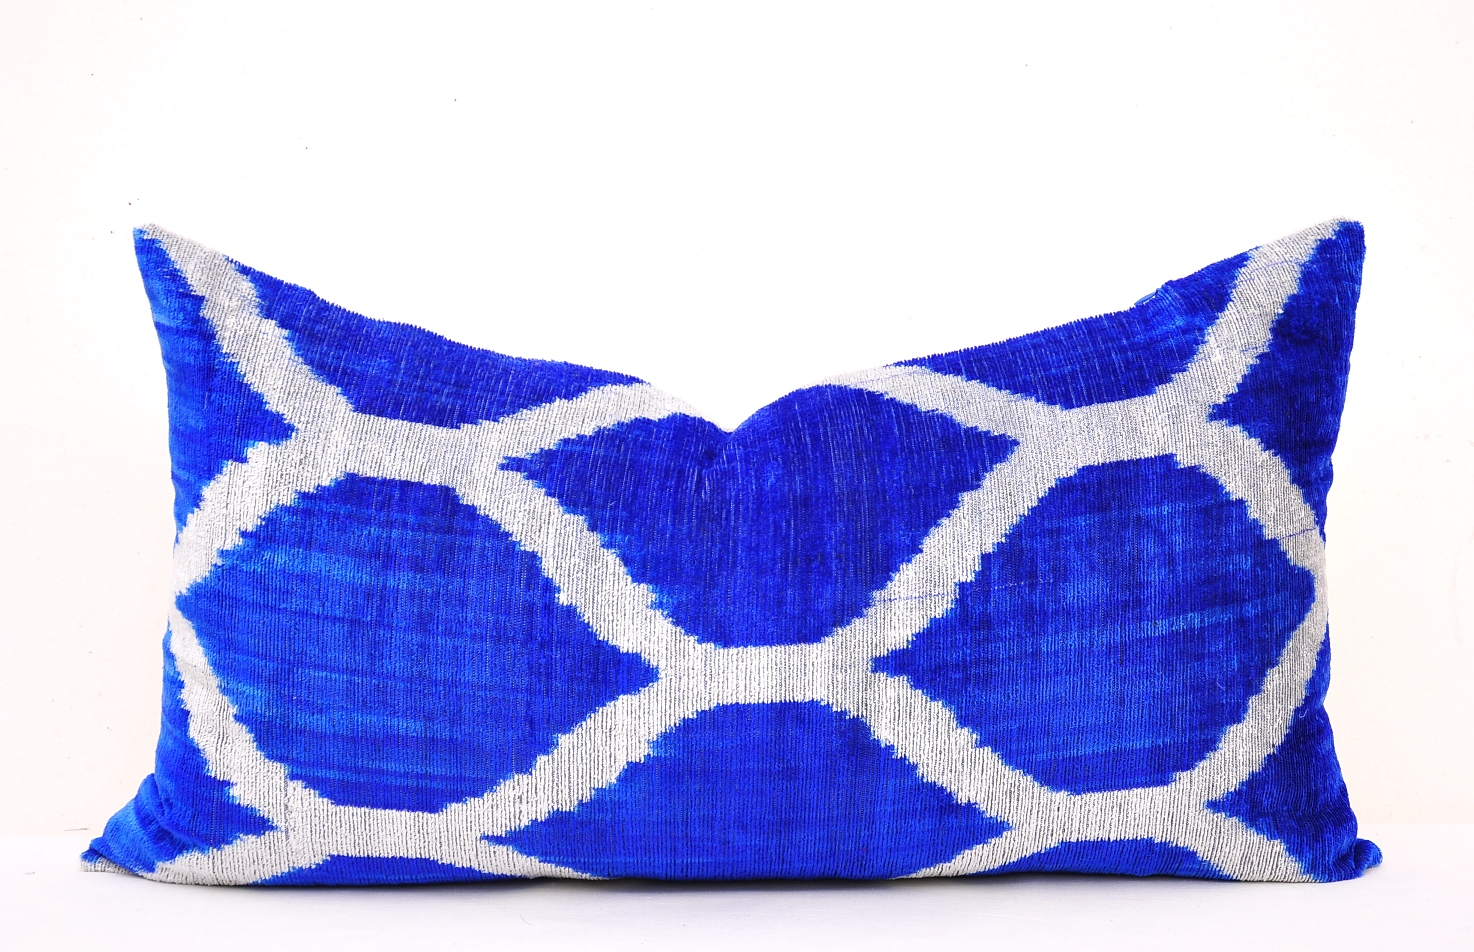 Pillows Online Sale Light Blue Decorative Home Decor Pillow Sale Online